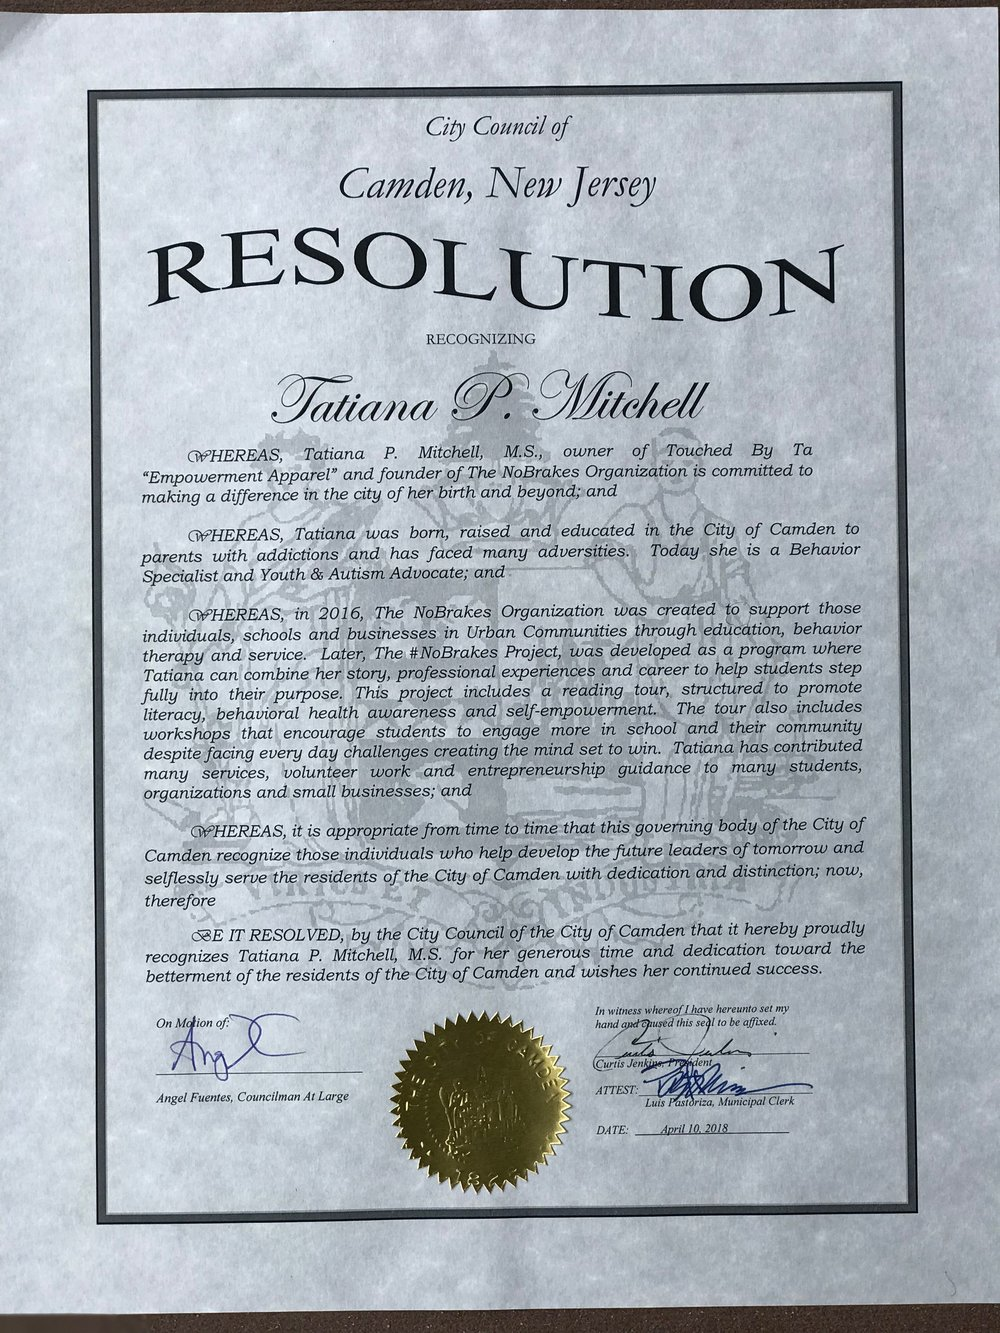 Camden, NJ 'Resolution Recognition' - April 2018: Camden City Council of Camden,NJ. 'Resolution Recognition' for dedication and betterment of the residents of the City of Camden: Councilman Angel Fuentes.